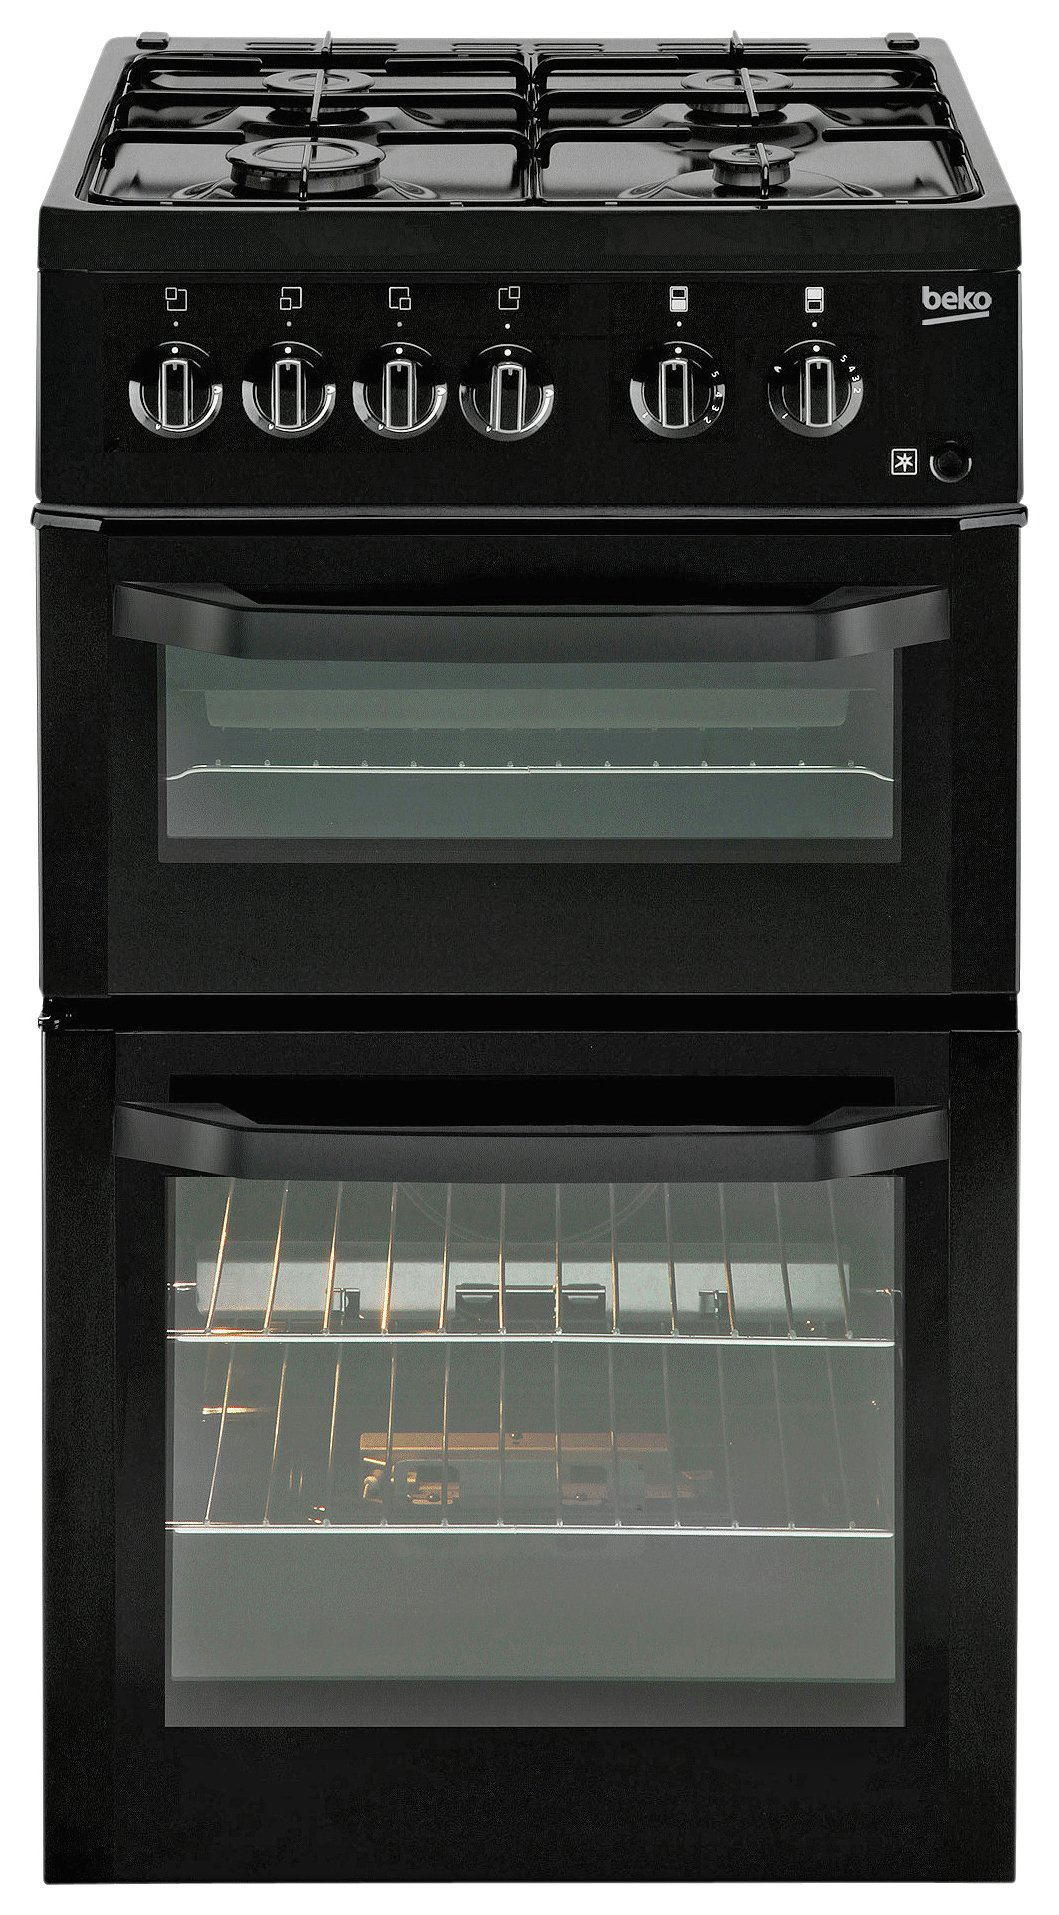 Image of Beko - BDG5181 Single - Gas Cooker - Black